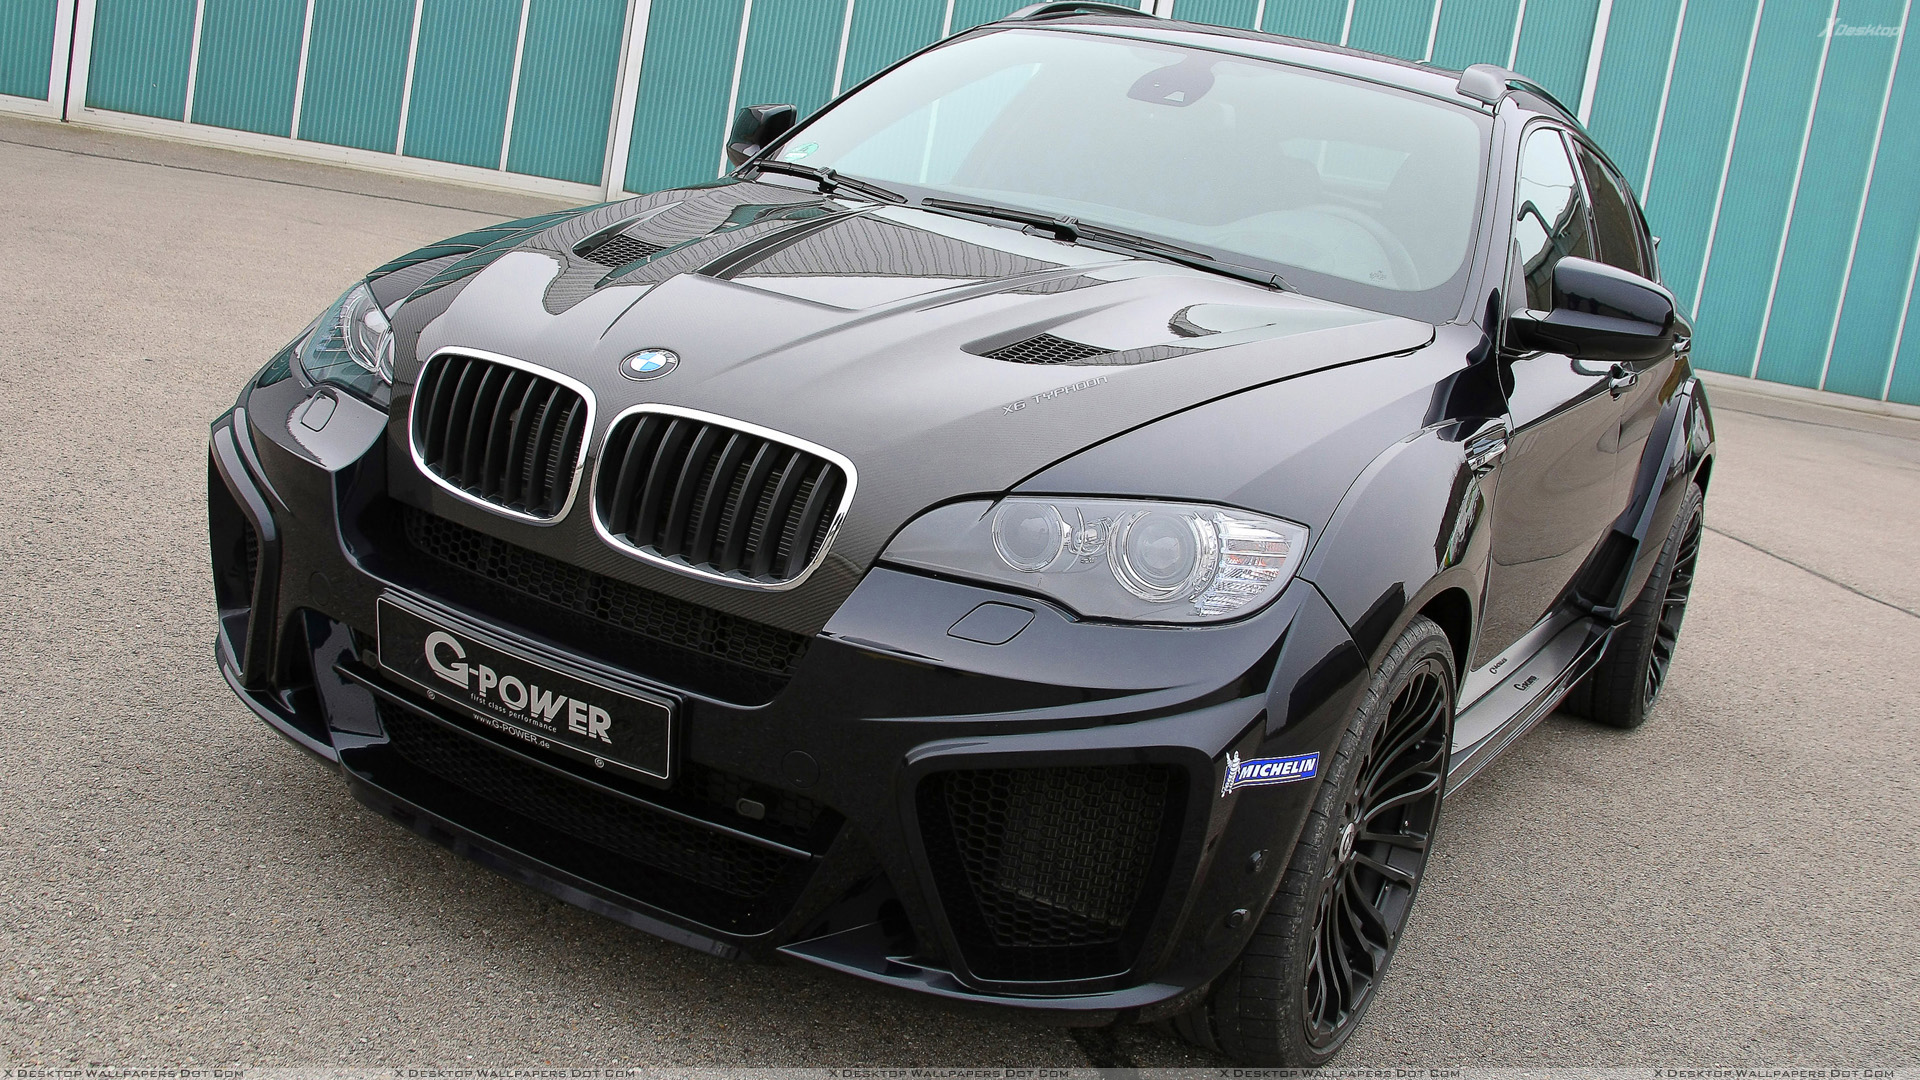 G Power Bmw X6 M Typhoon Wide Body Front Pose In Black